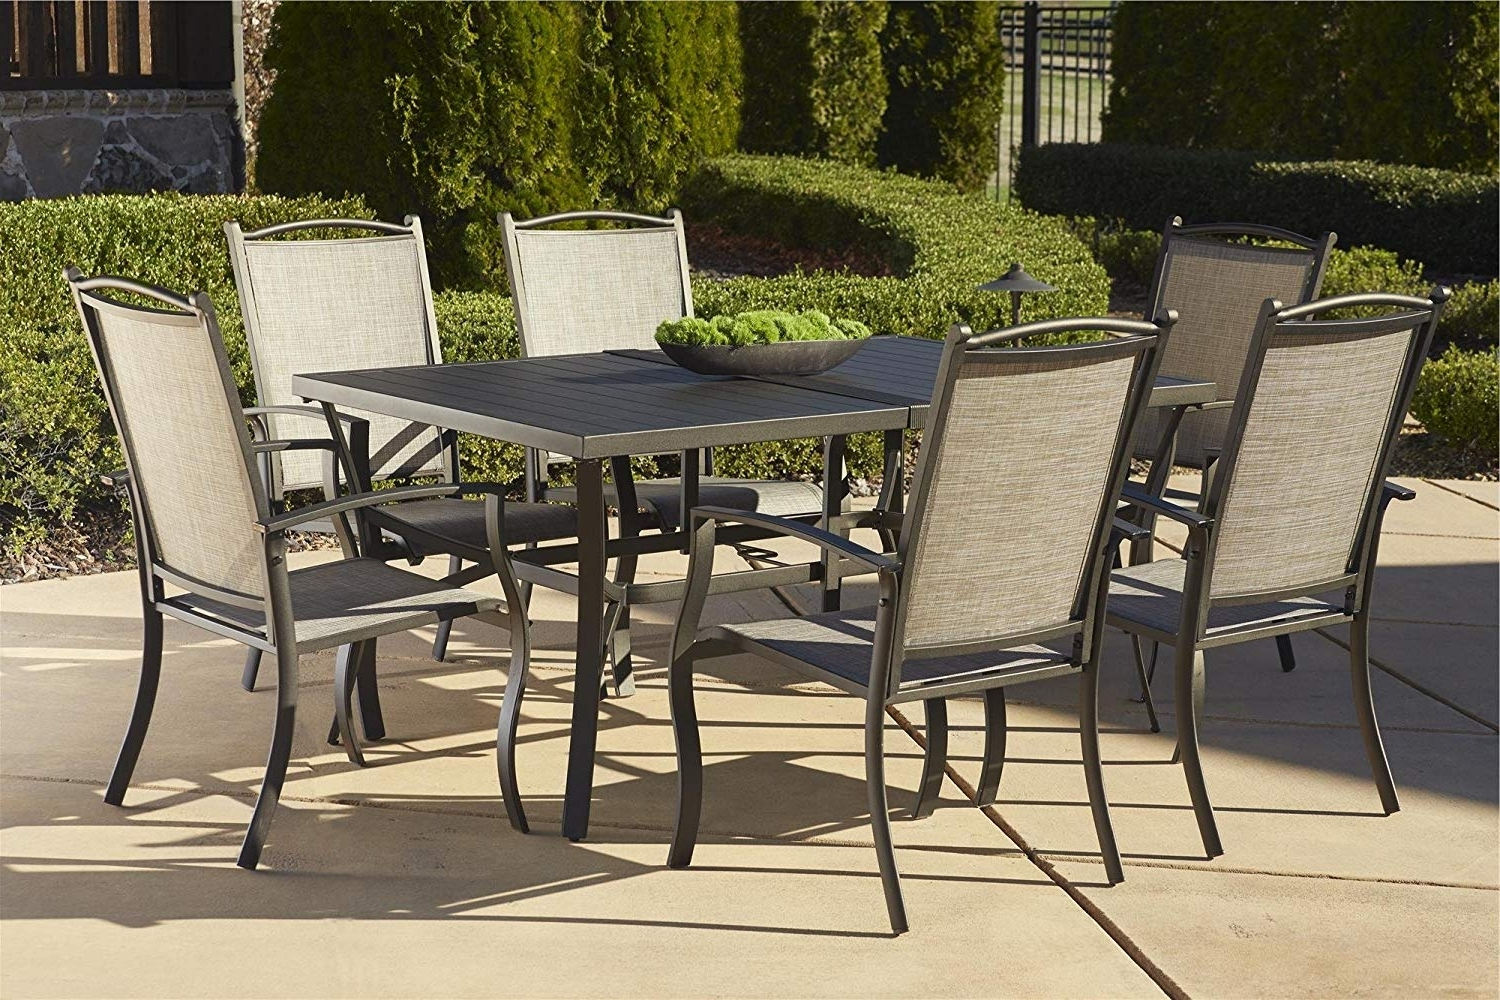 Amazon: Cosco Outdoor 7 Piece Serene Ridge Aluminum Patio Dining Intended For 2018 Patio Conversation Dining Sets (View 8 of 15)